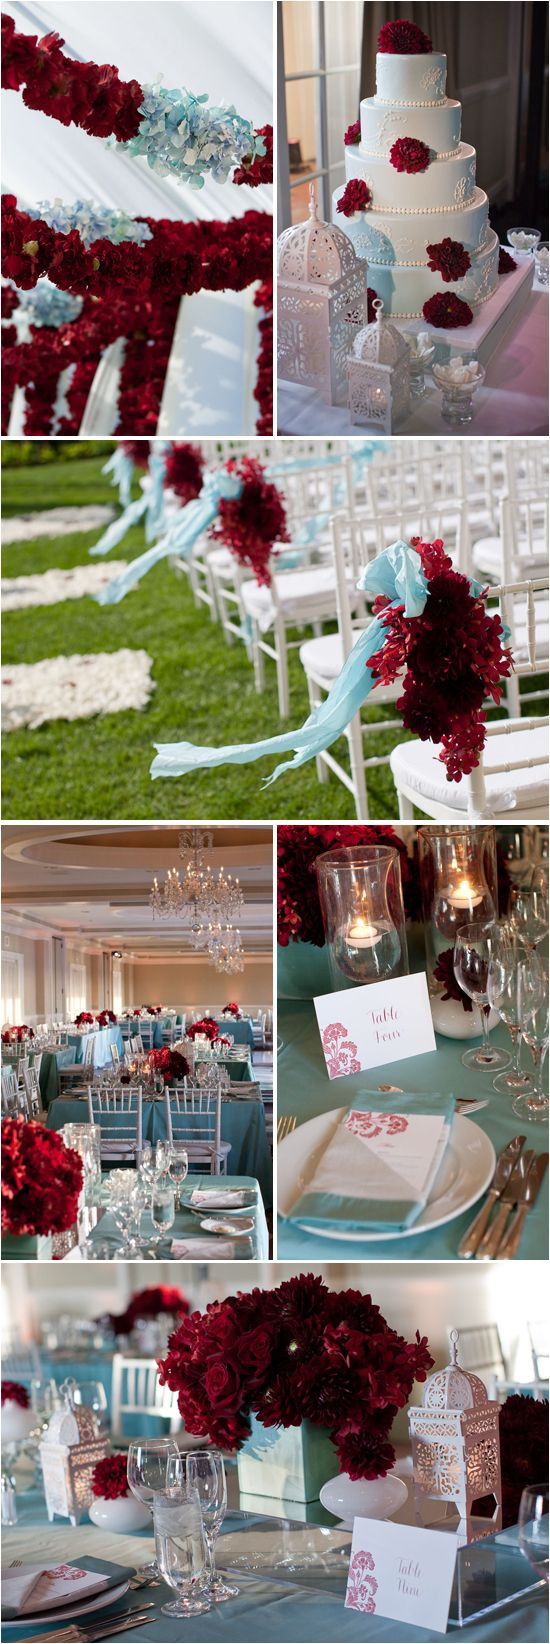 Color Palette Inspiration: Crimson Red & Ice Blue - Project Wedding